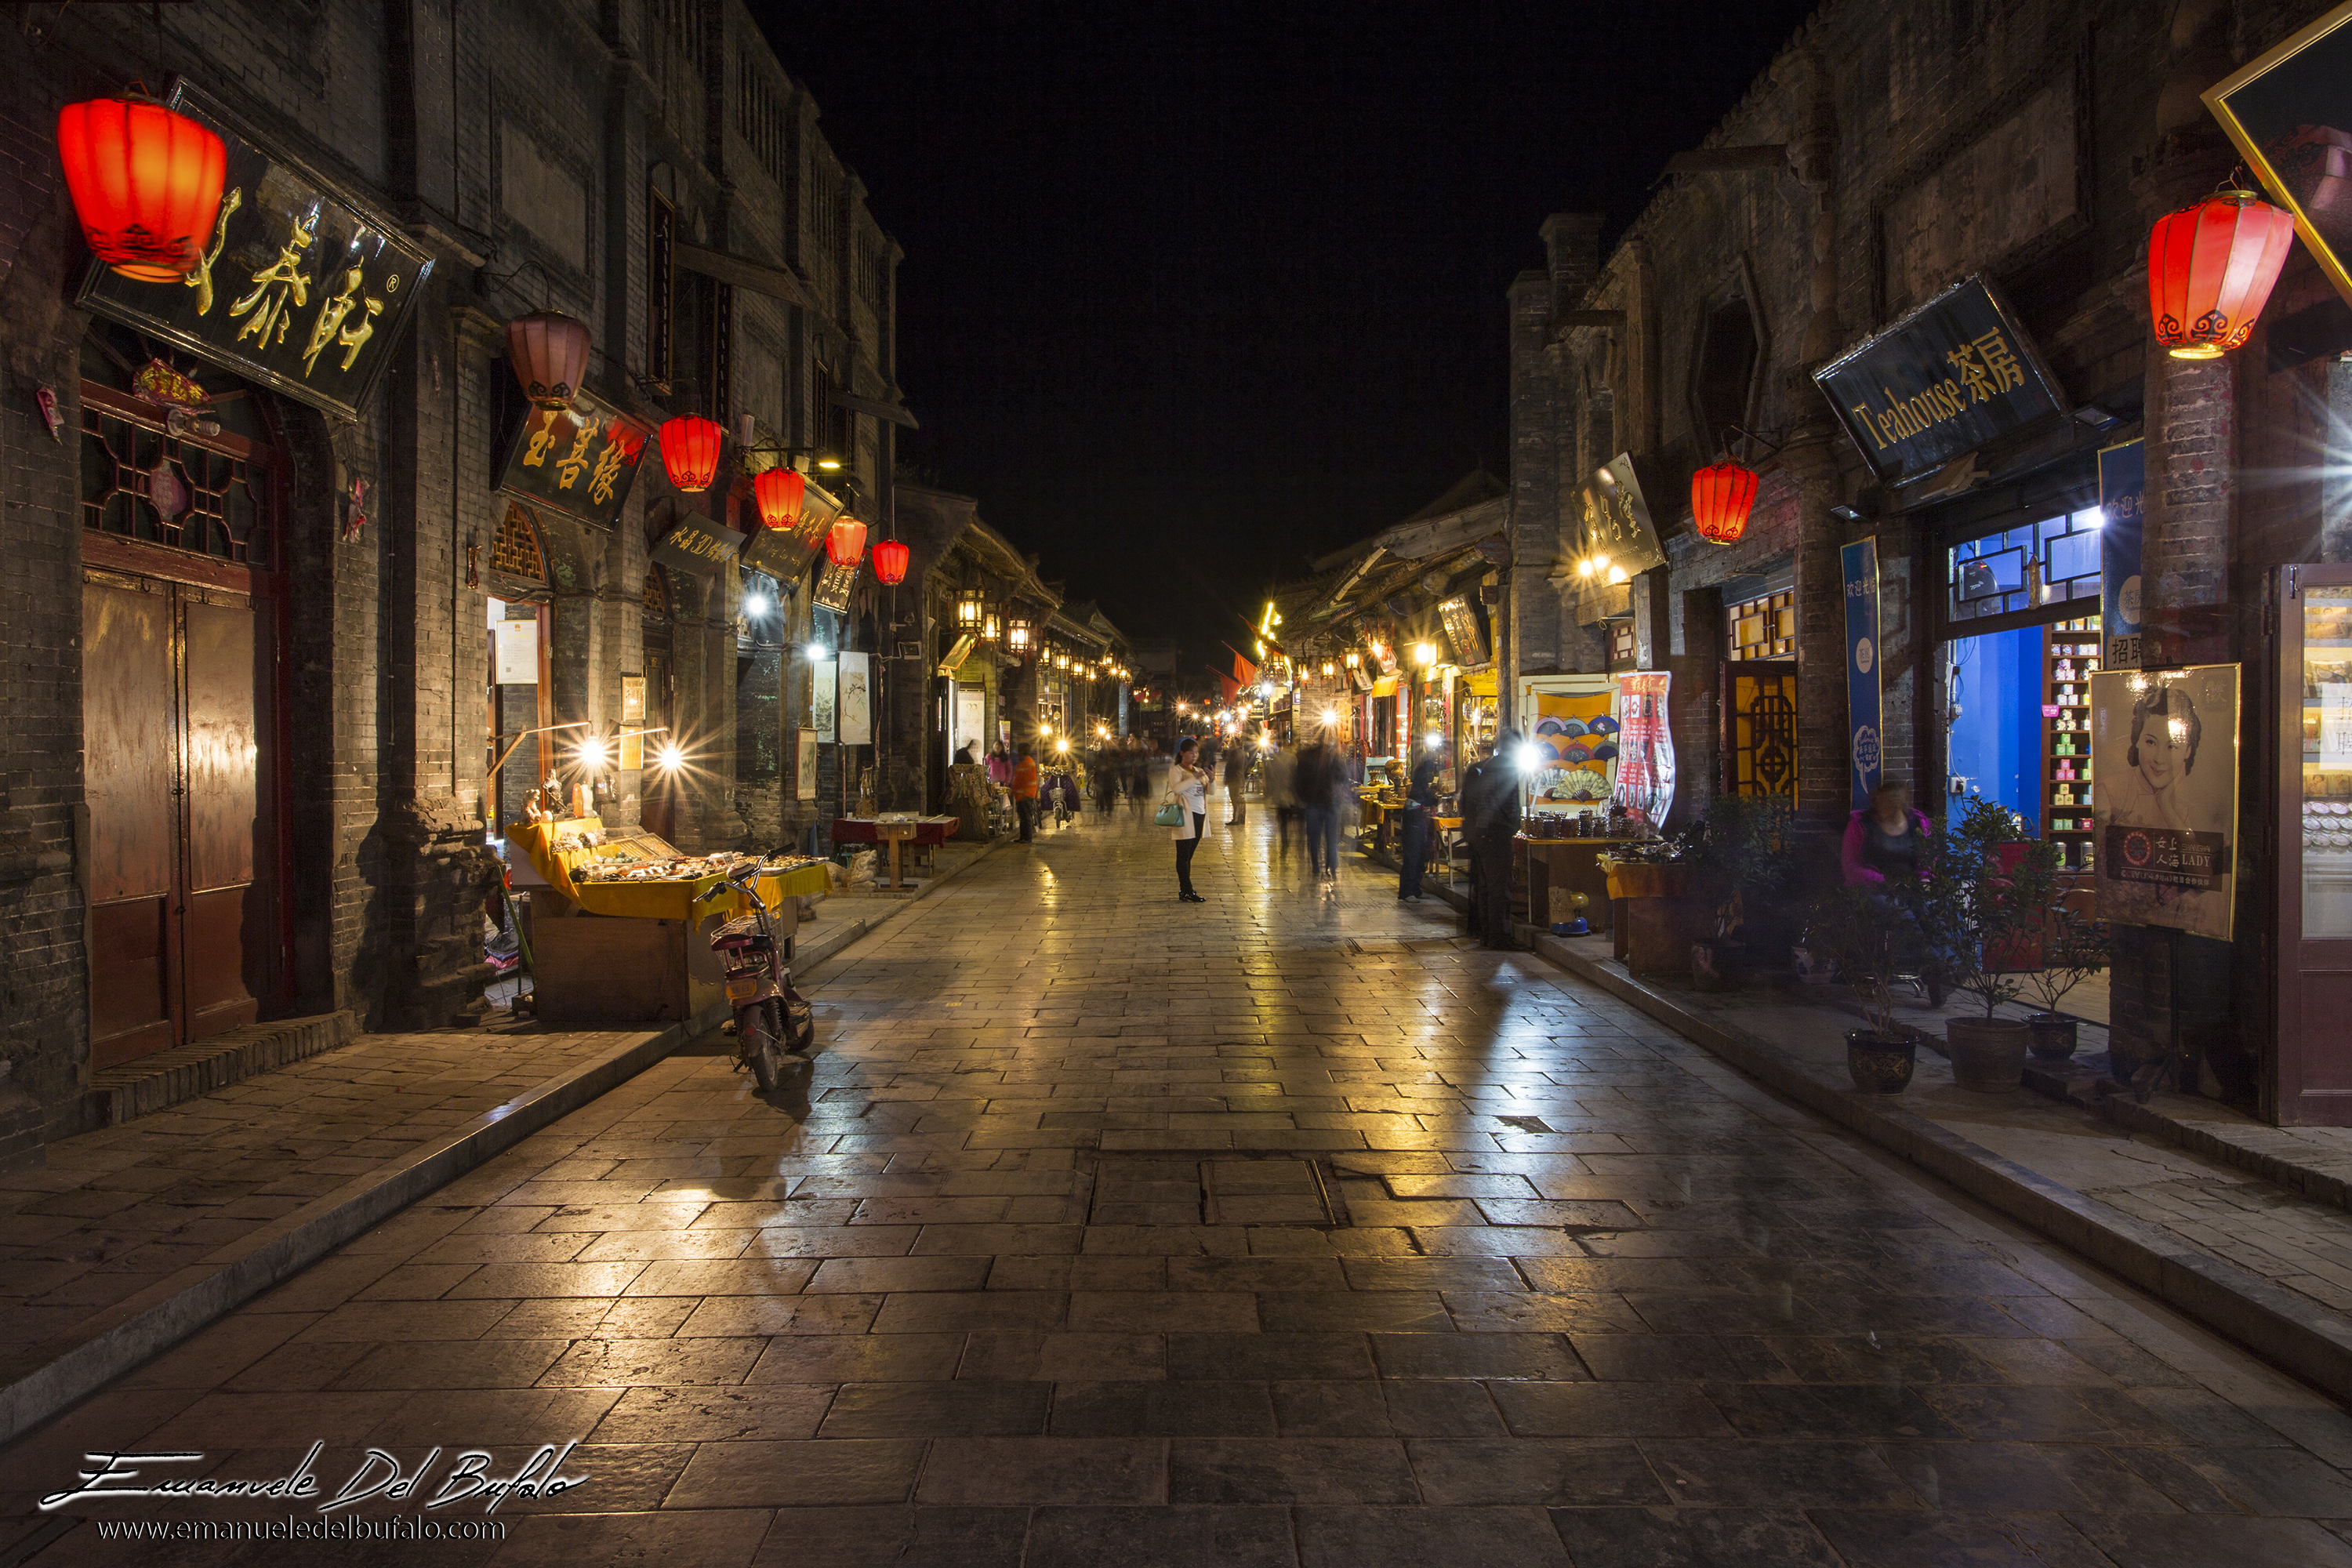 www.emanueledelbufalo.com #china #pyngyao #oldtown #night #longexposure #citycenter #street #tripod